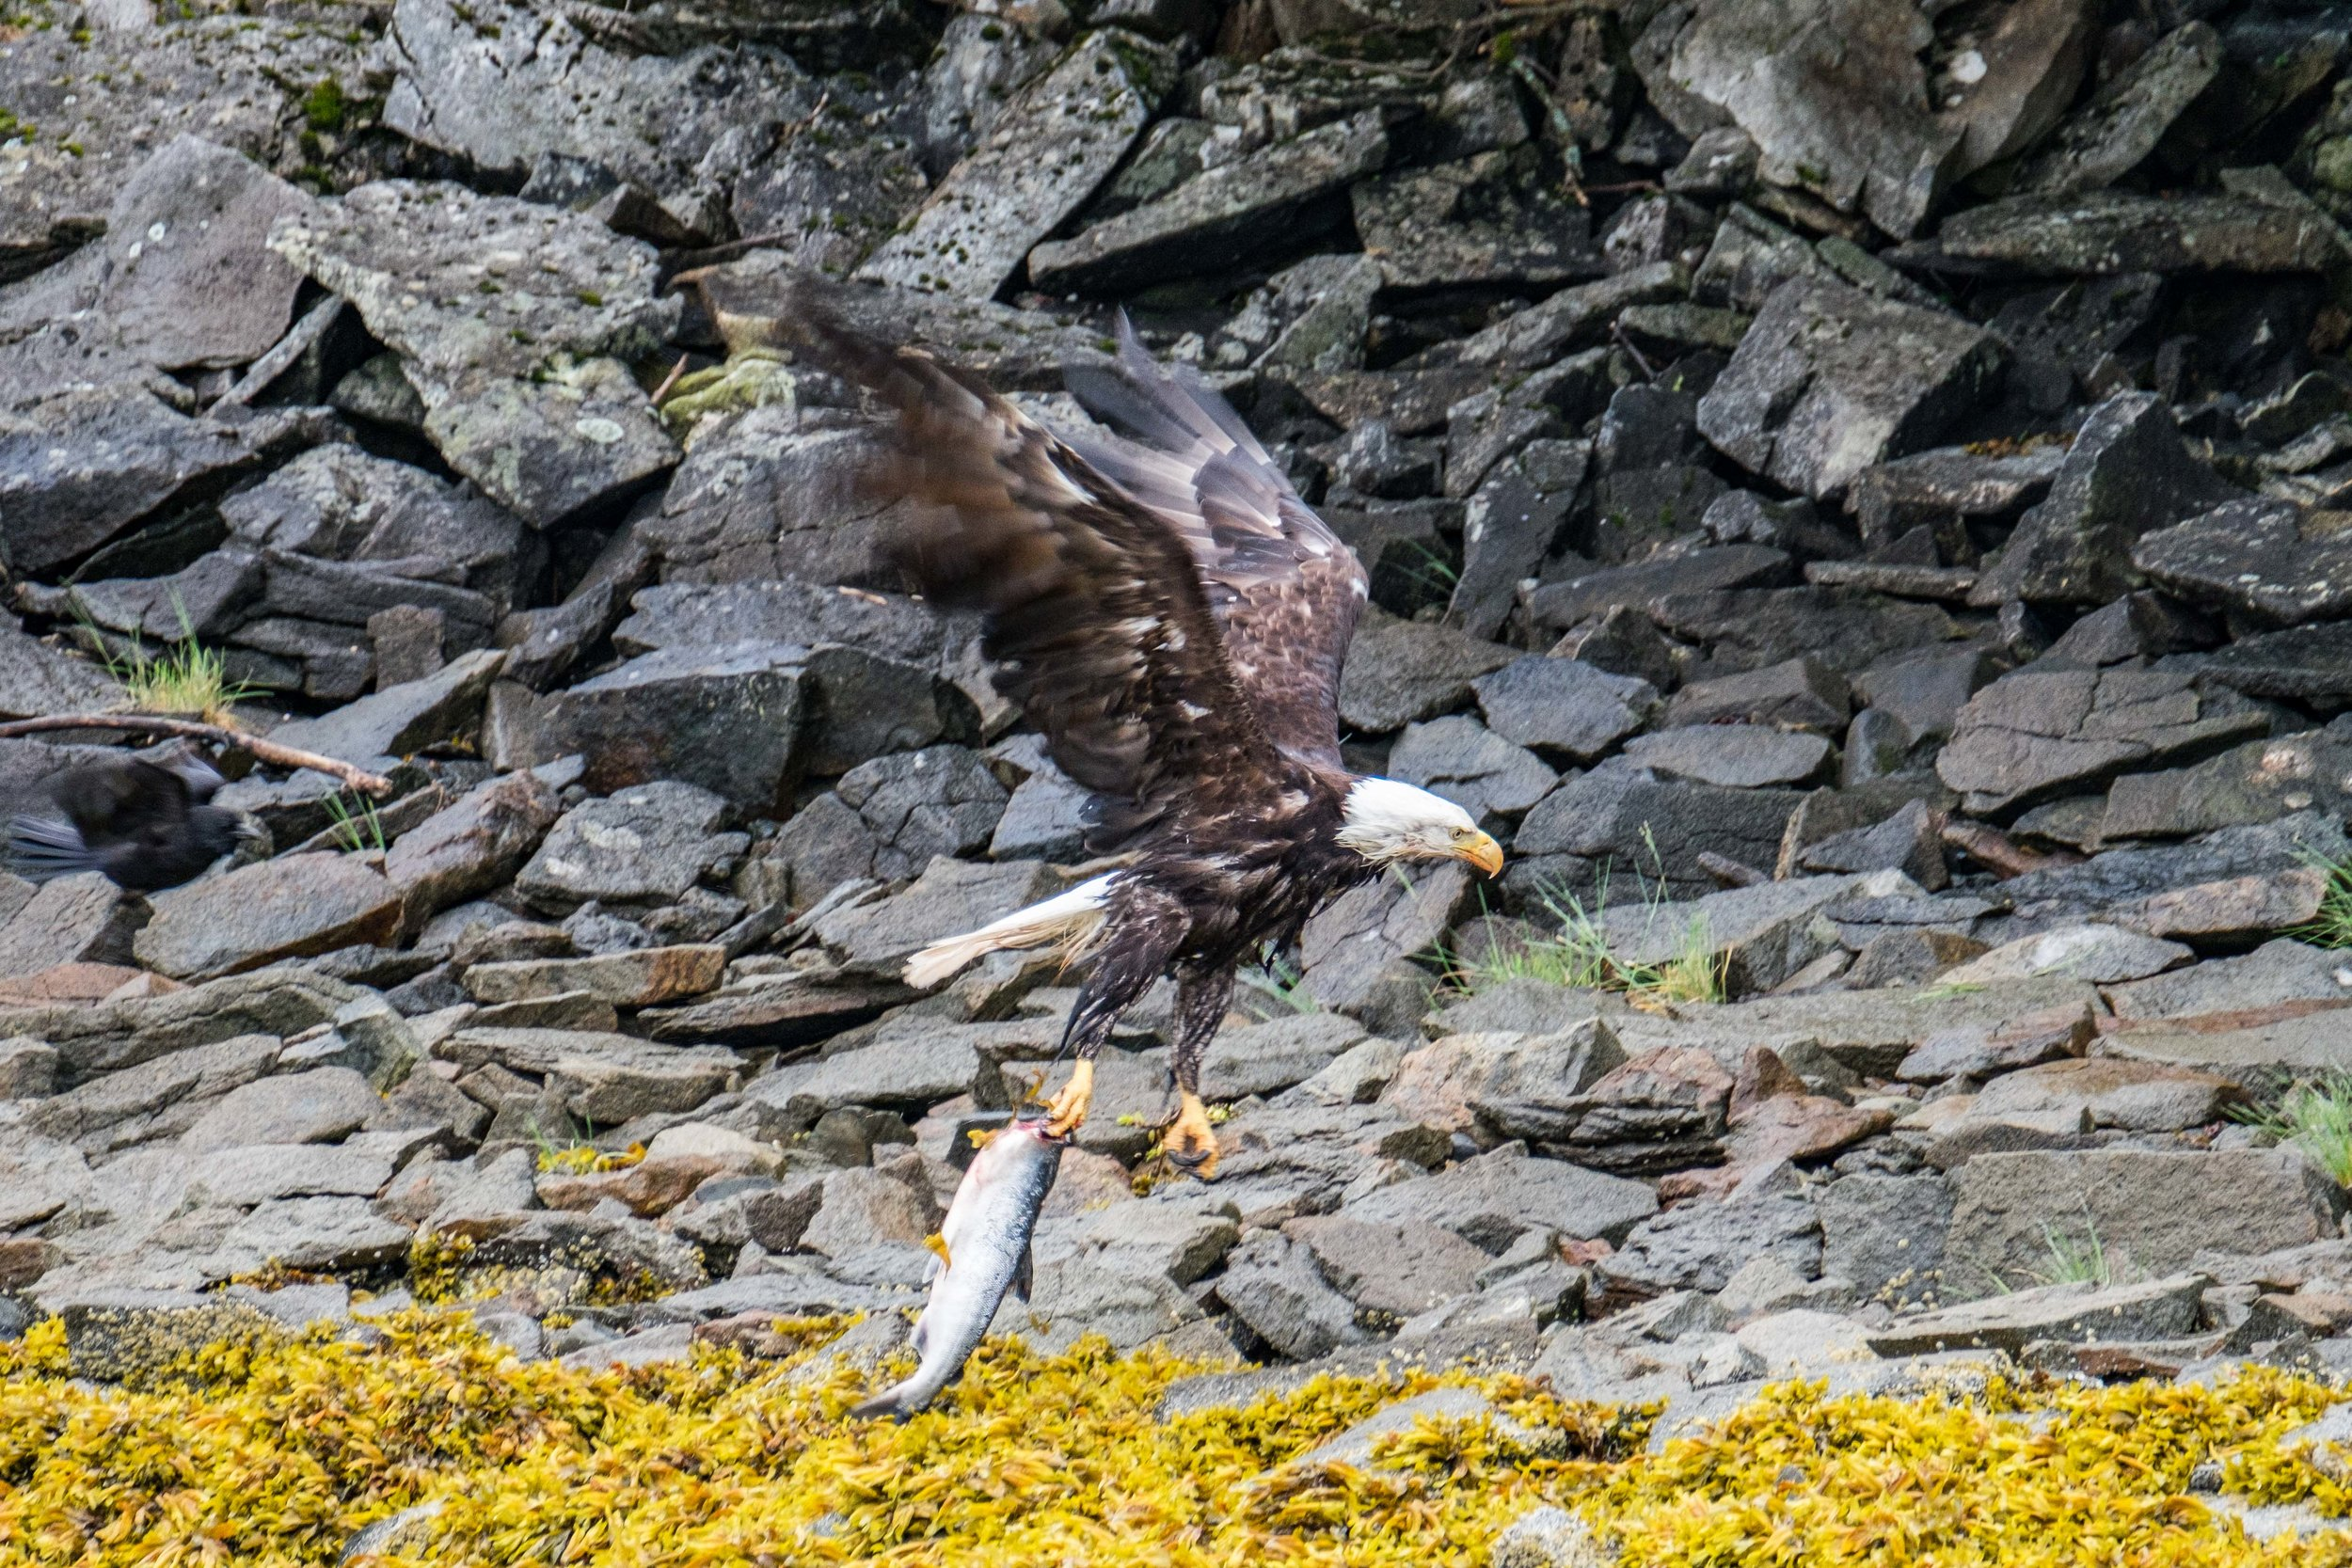 An eagle flies through the Shelikof Straight with a salmon in its talons.